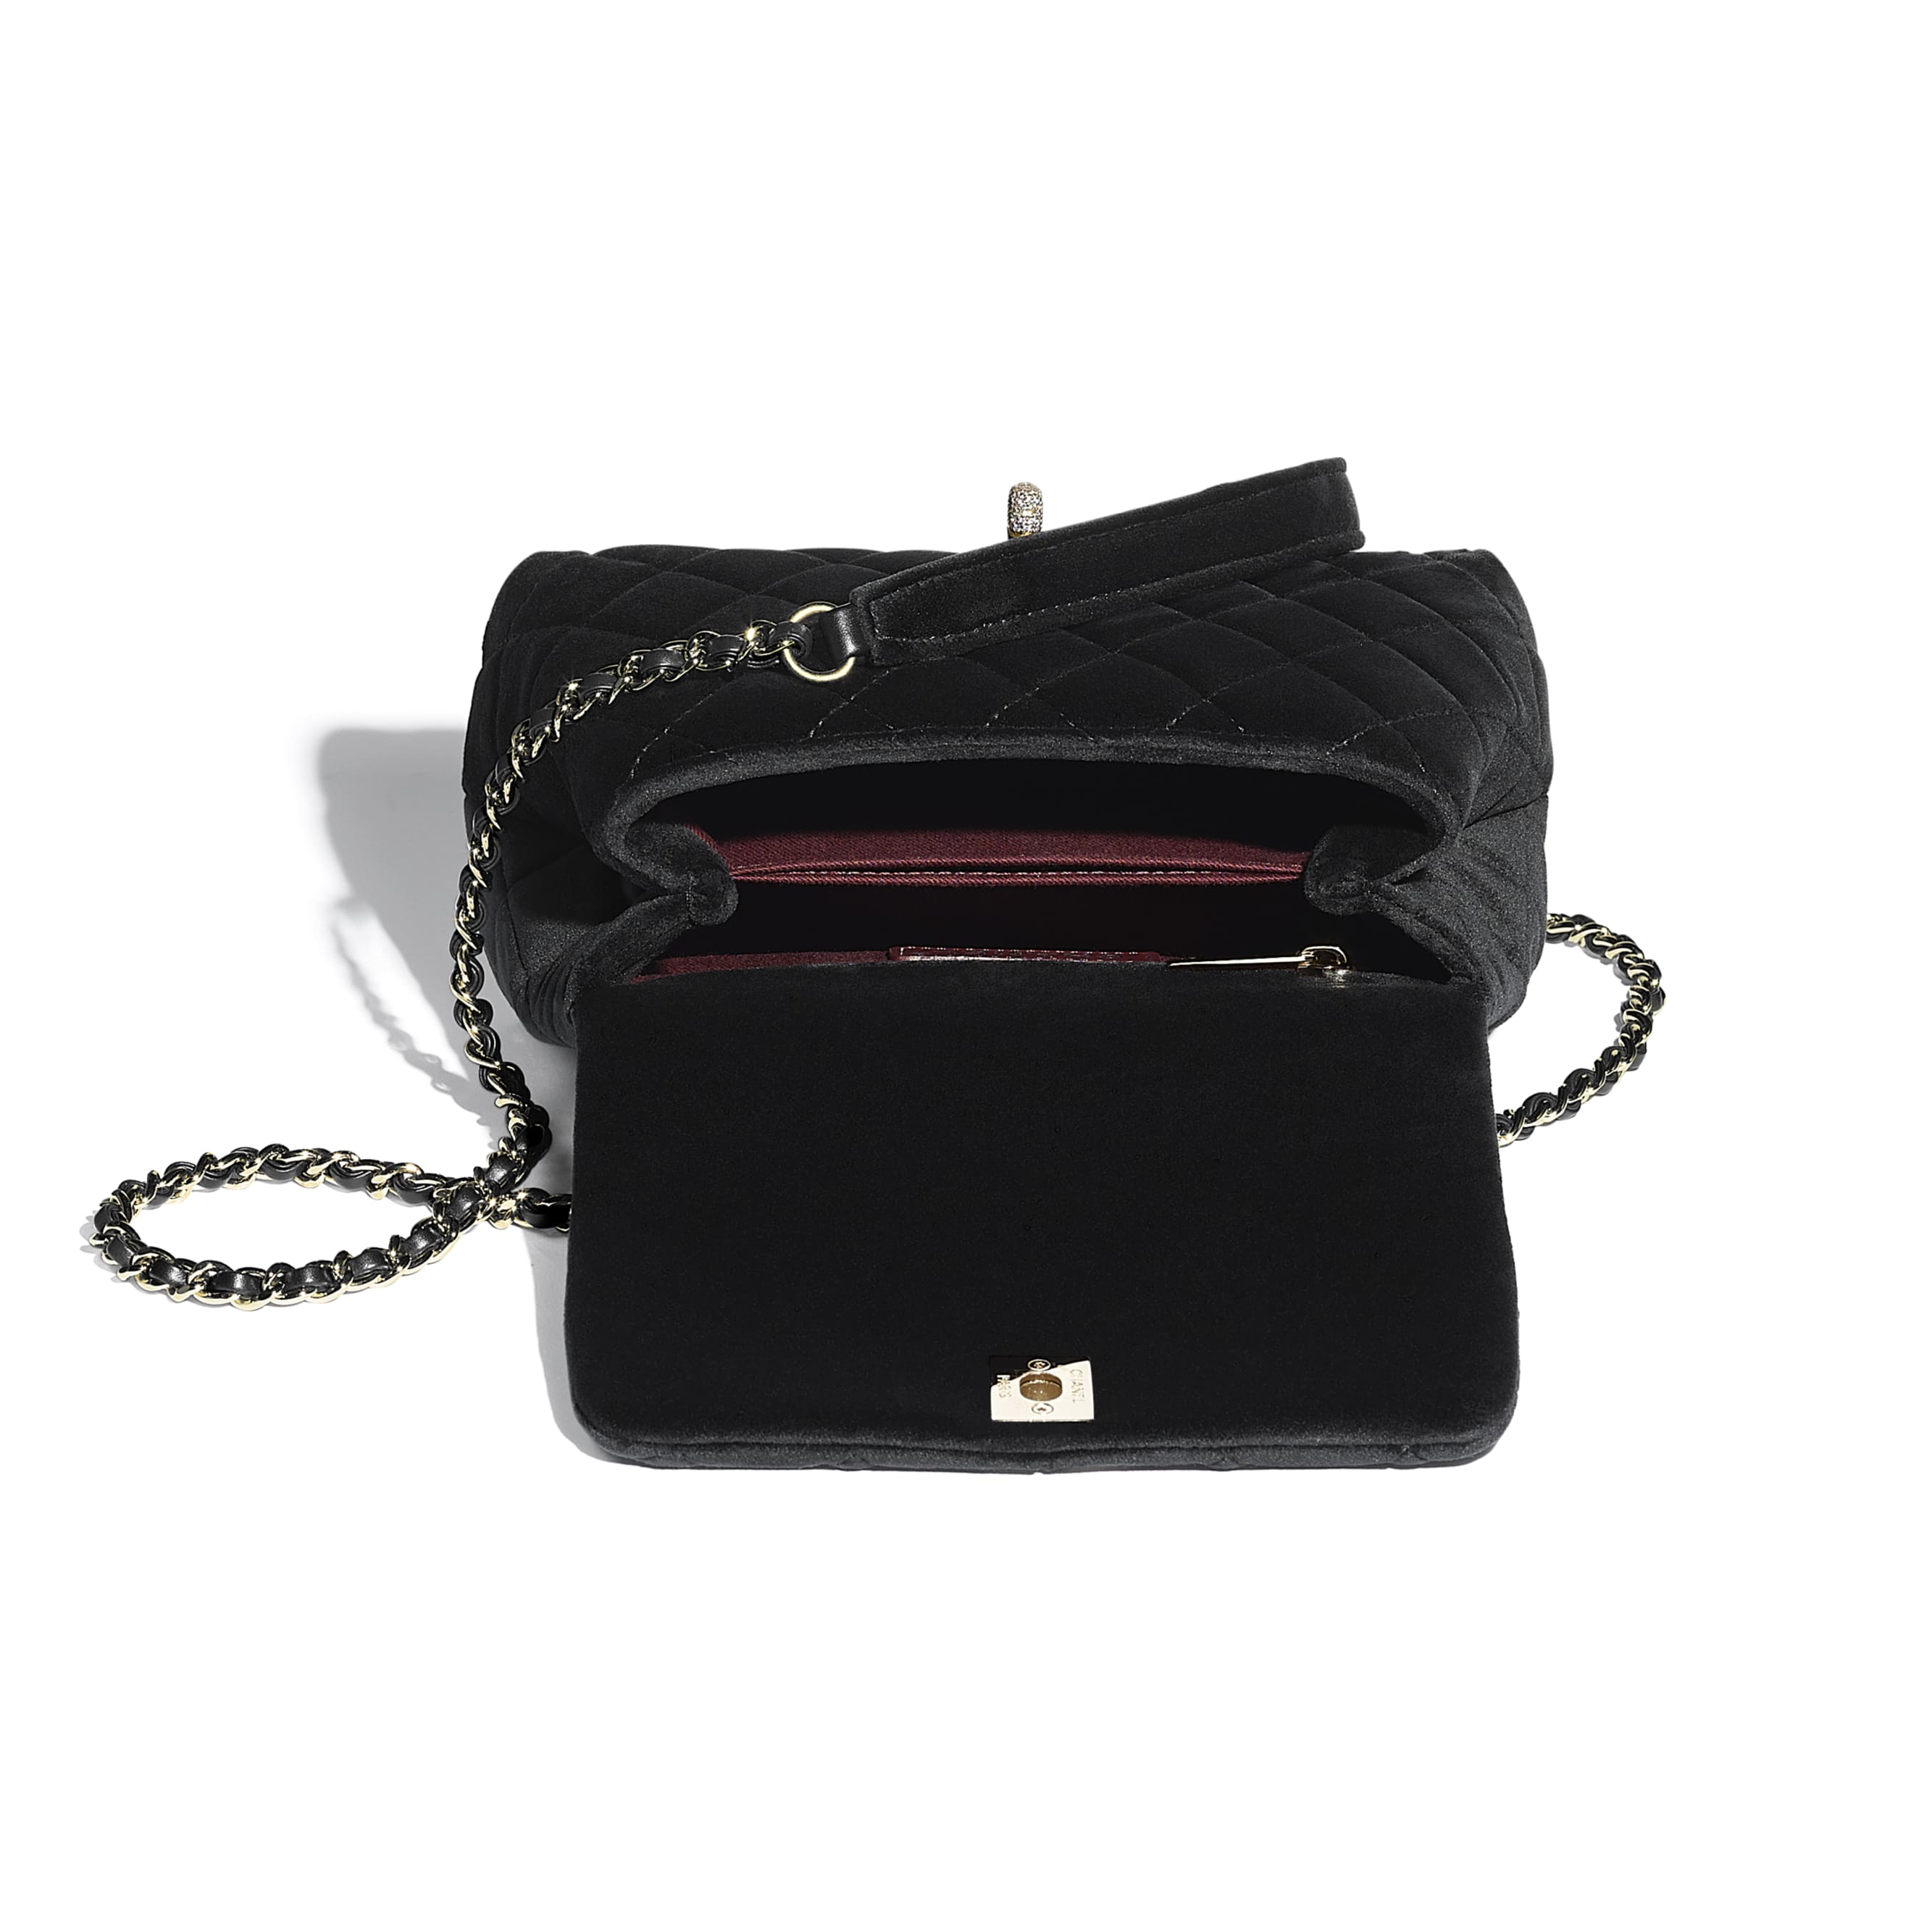 Mini Flap Bag with Handle - Black - Velvet, Diamanté & Gold-Tone Metal - CHANEL - Other view - see standard sized version